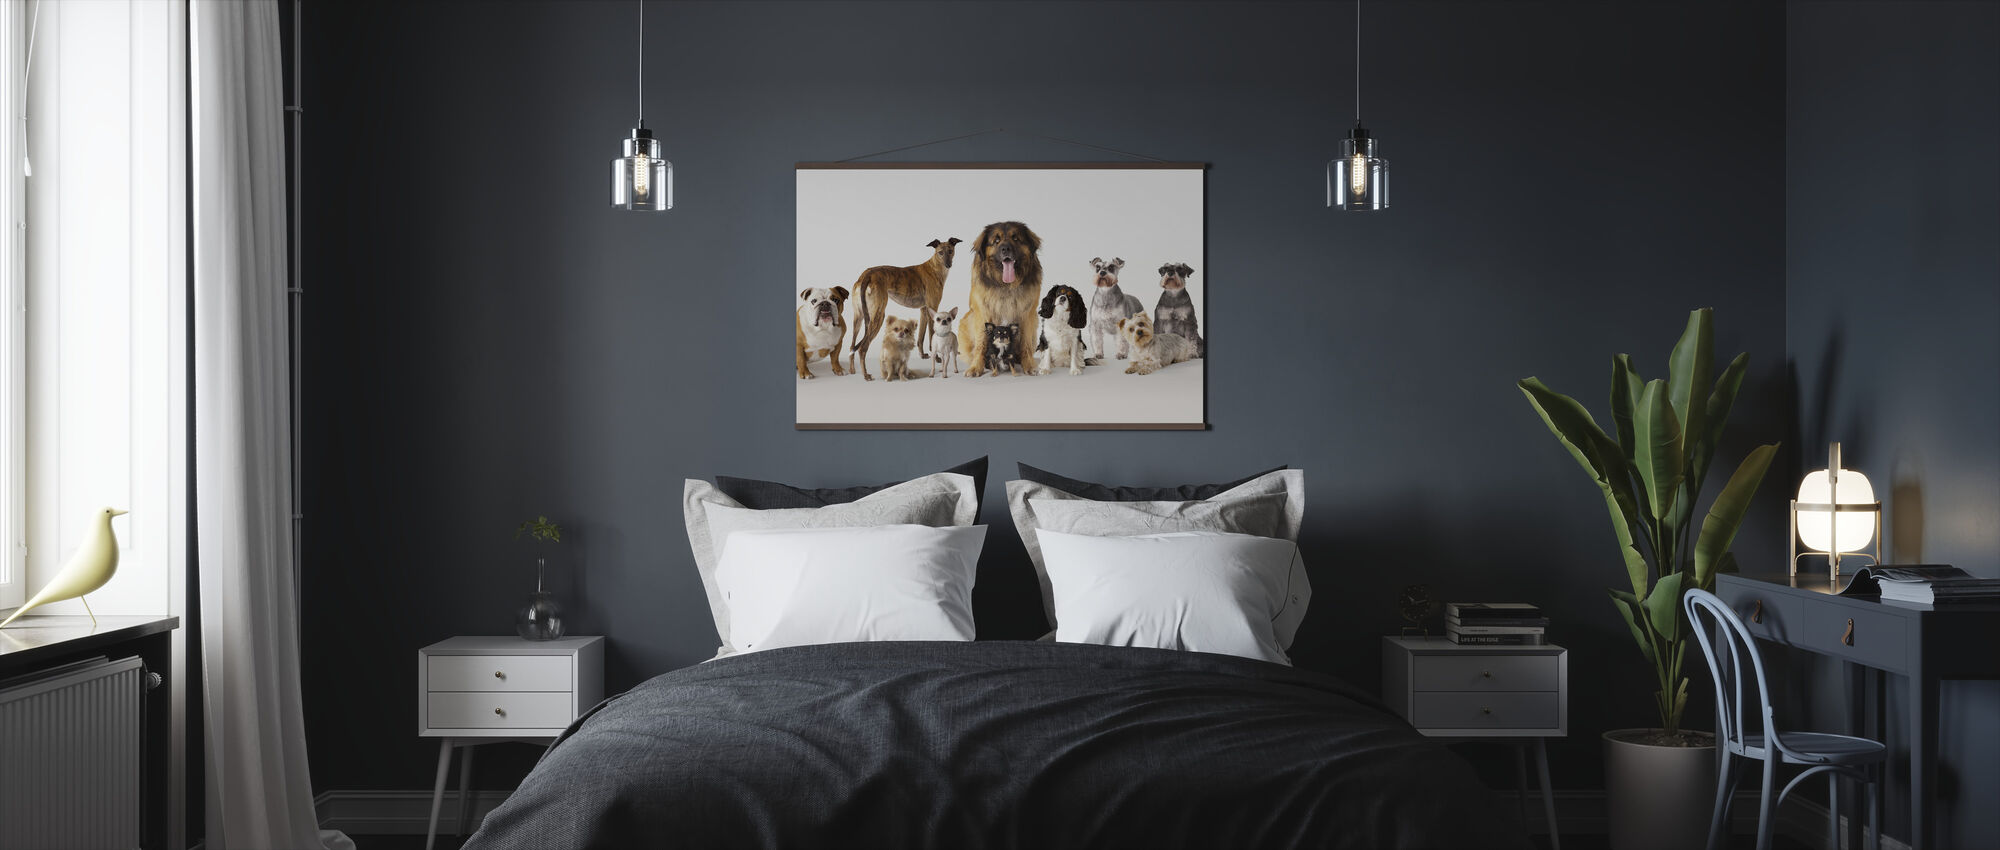 Group Portrait of Dogs - Poster - Bedroom